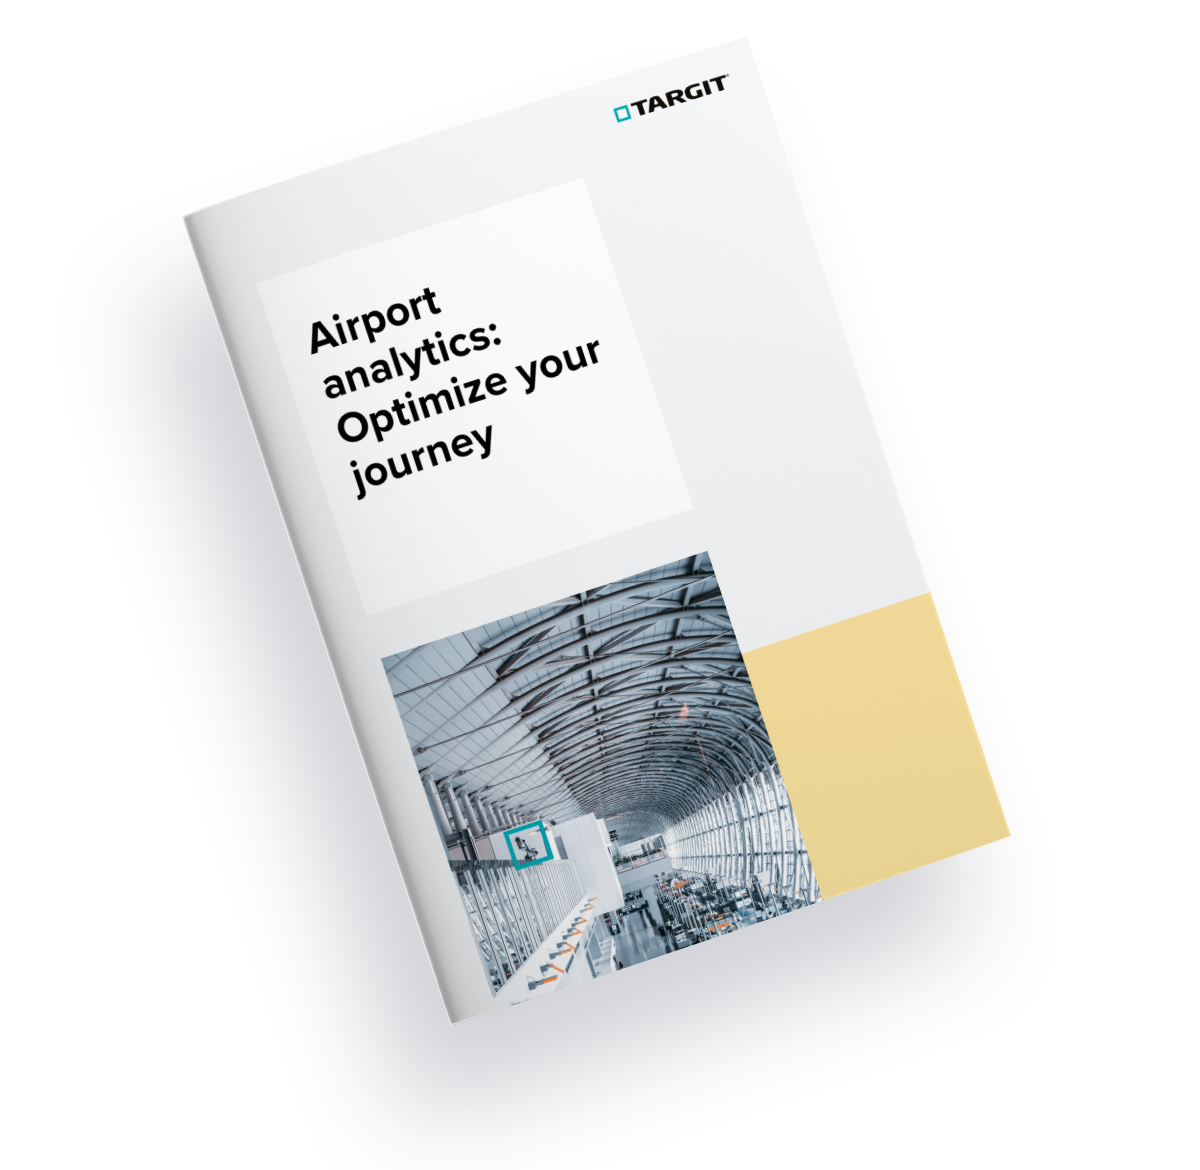 airport analytics optimize your journey front cover TARGIT guide